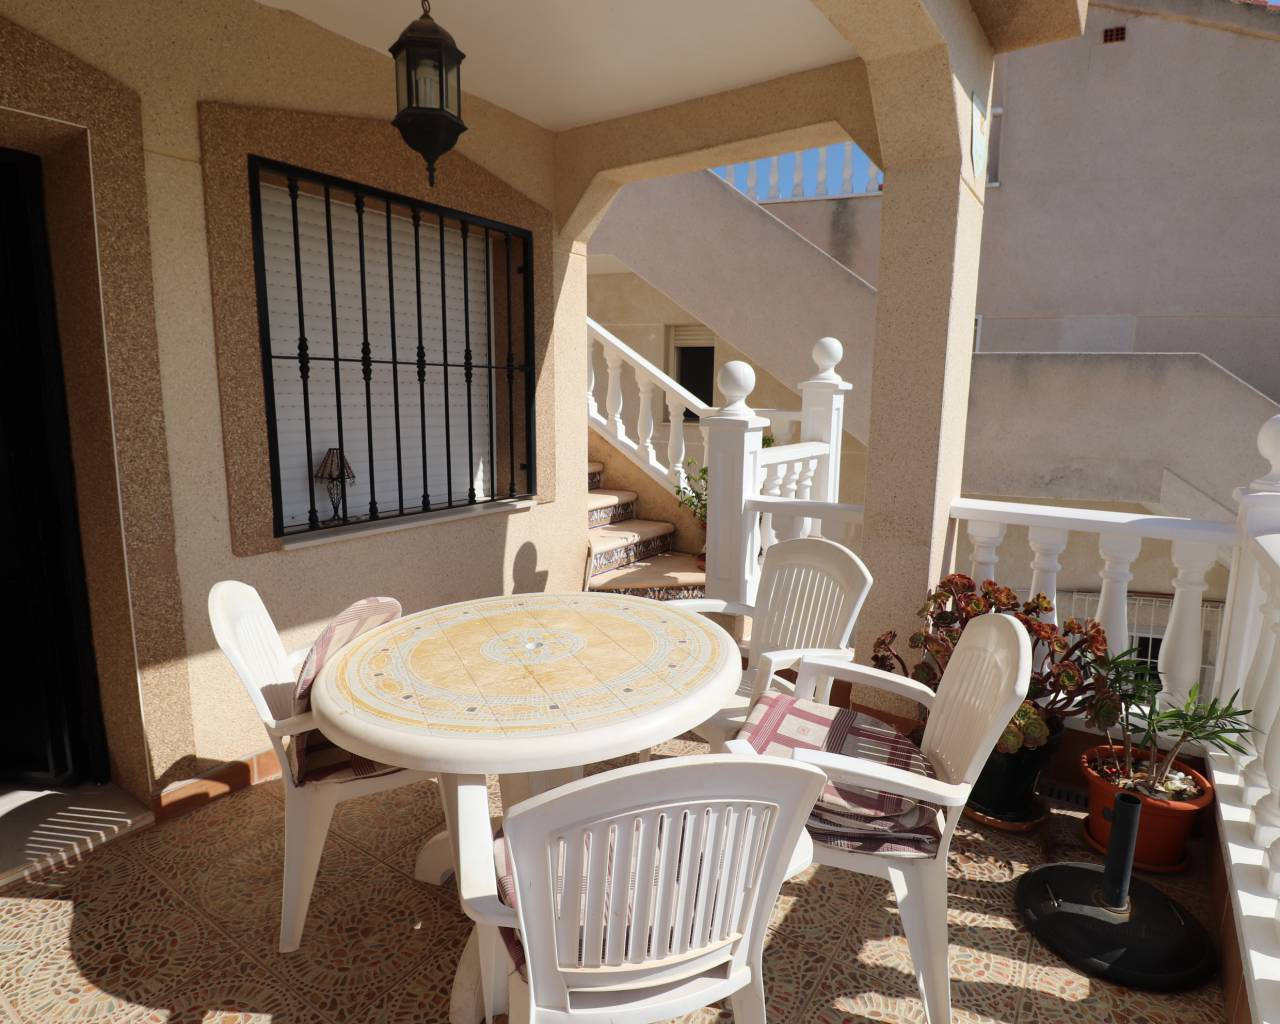 Sale - Detached Villa - Ciudad Quesada - La Marquesa